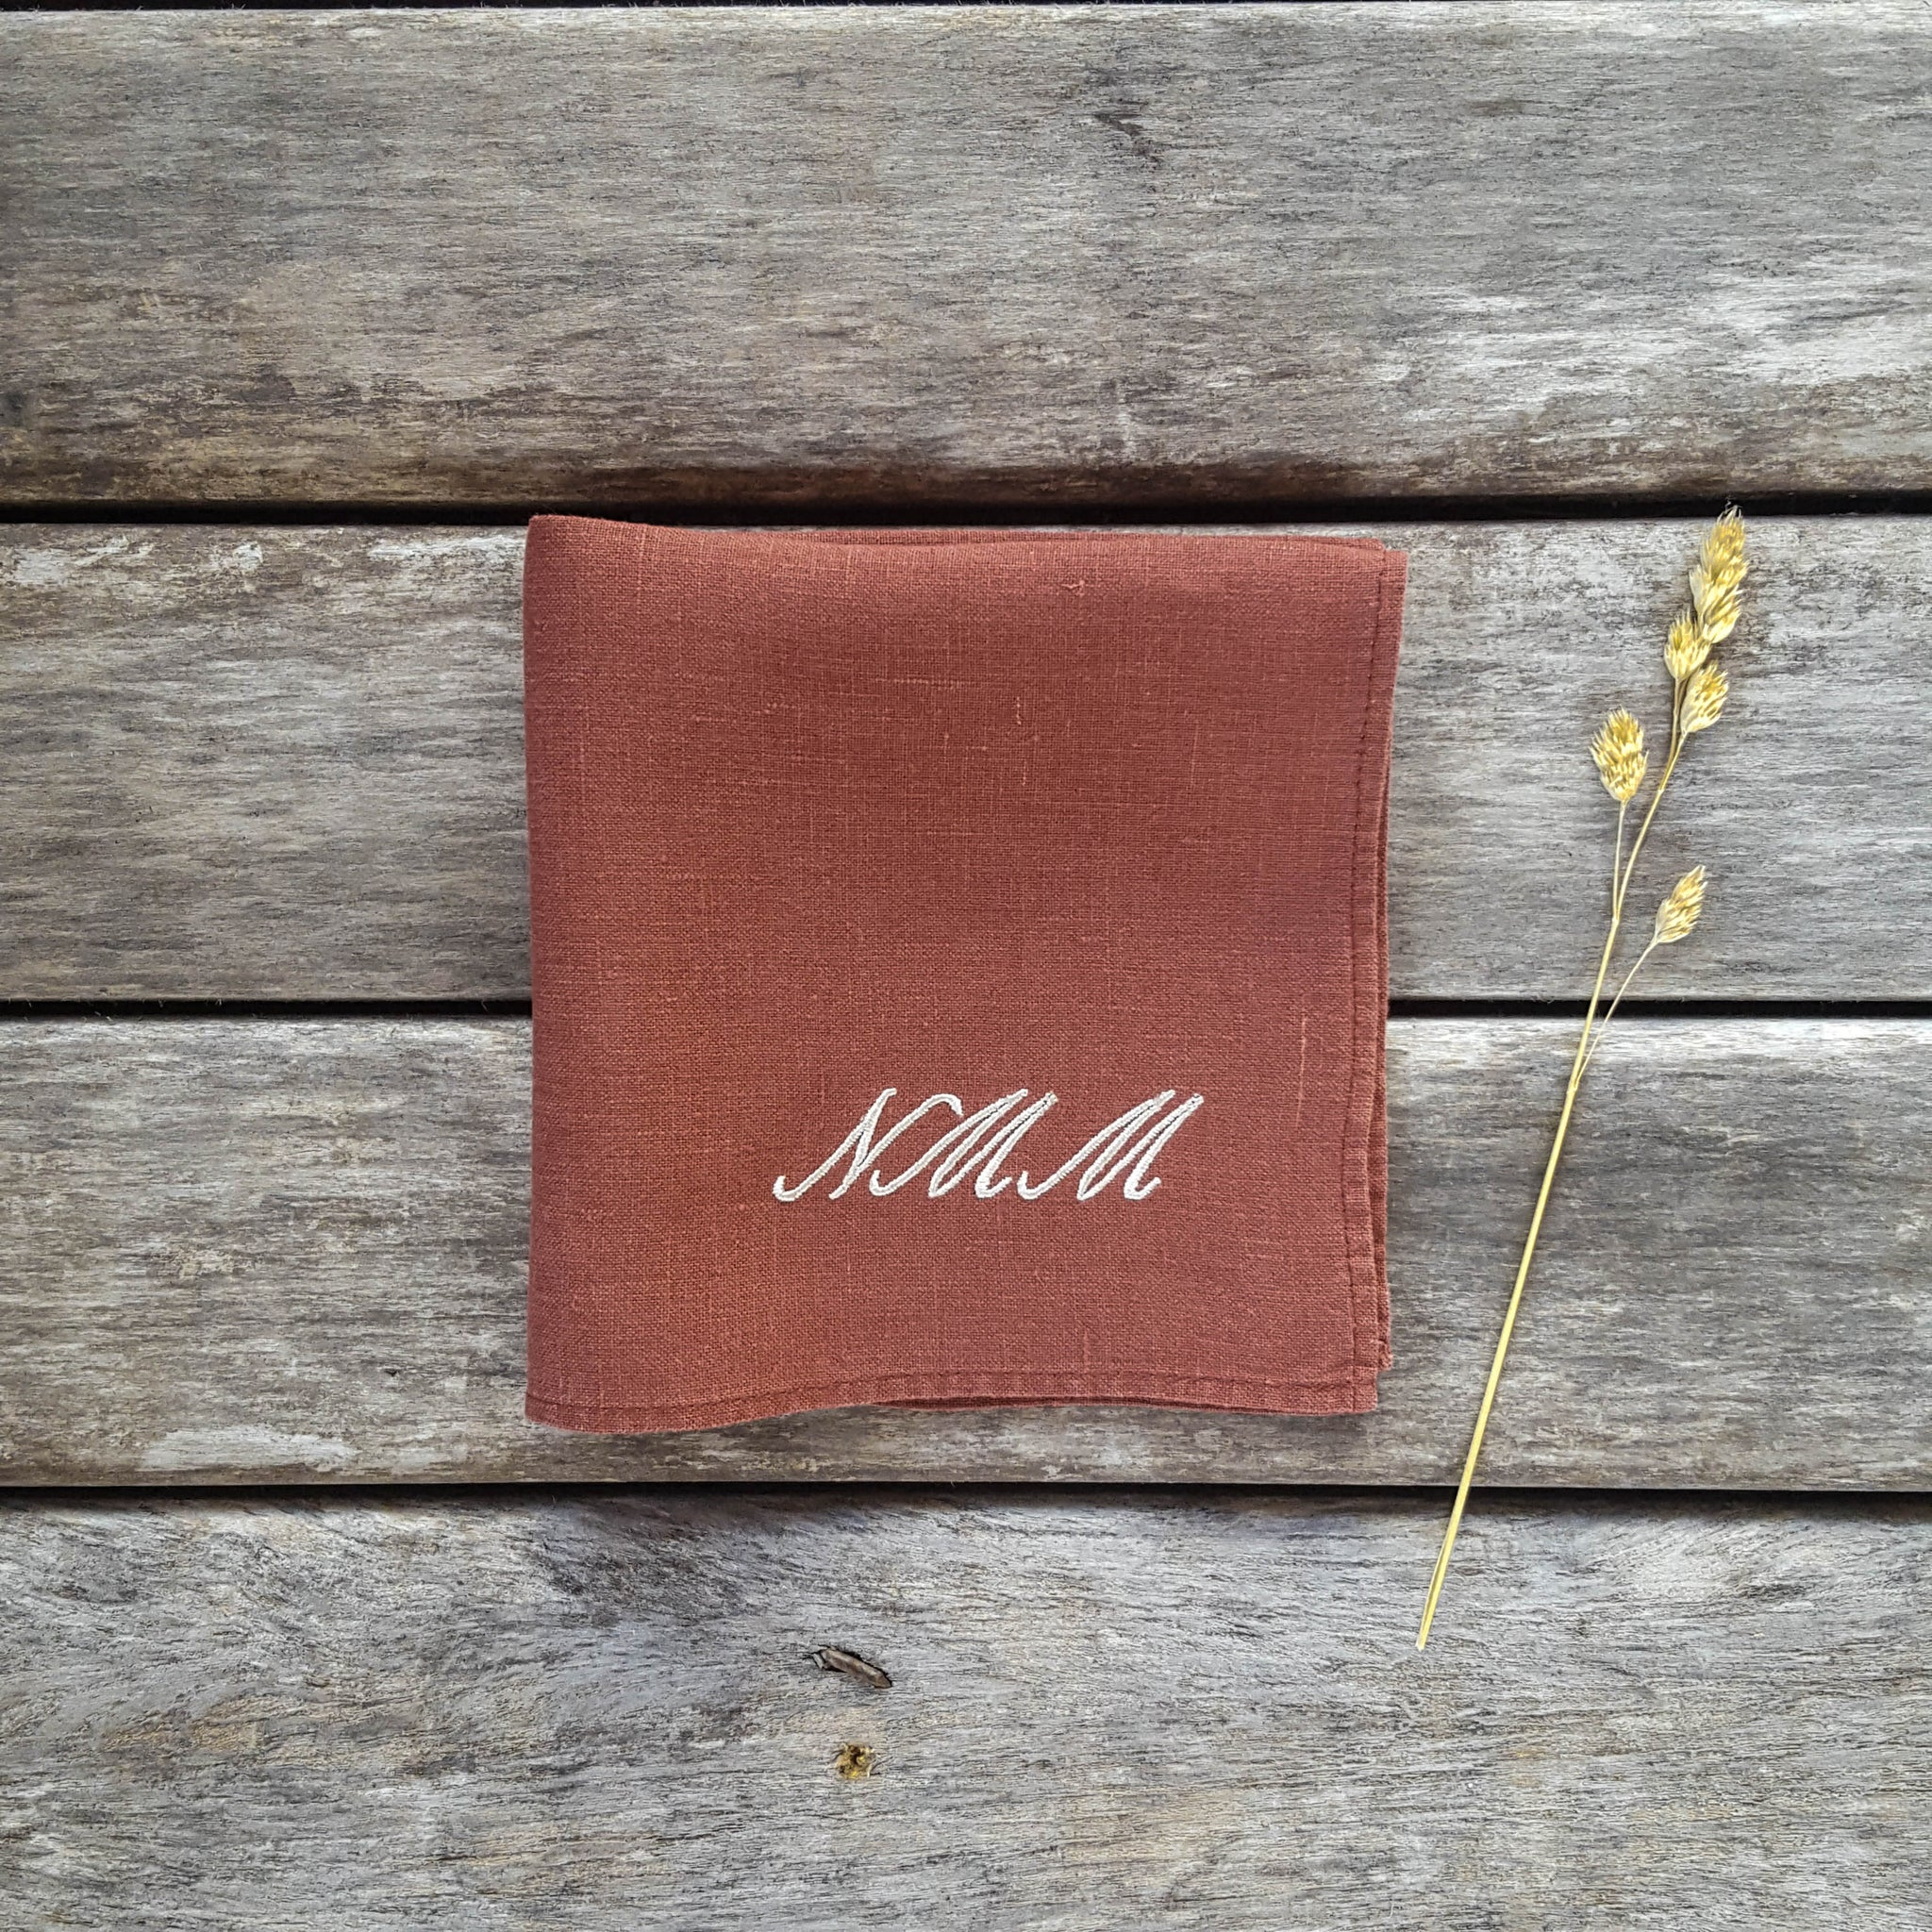 Burnt orange monogrammed linen handkerchief, Palace Script font